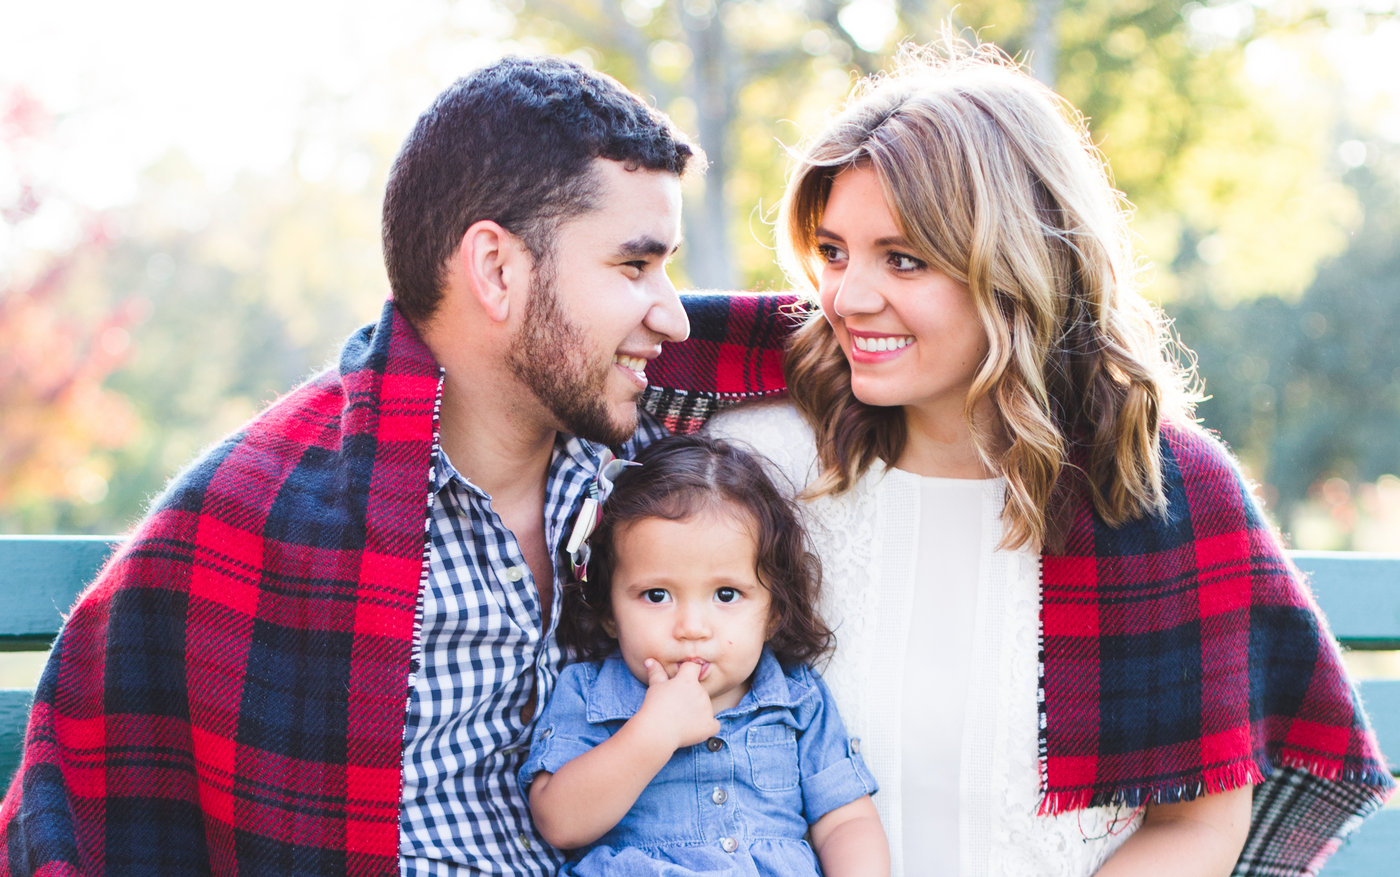 simple tips for family photo outfits - what to wear for family photos | www.bylaurenm.com